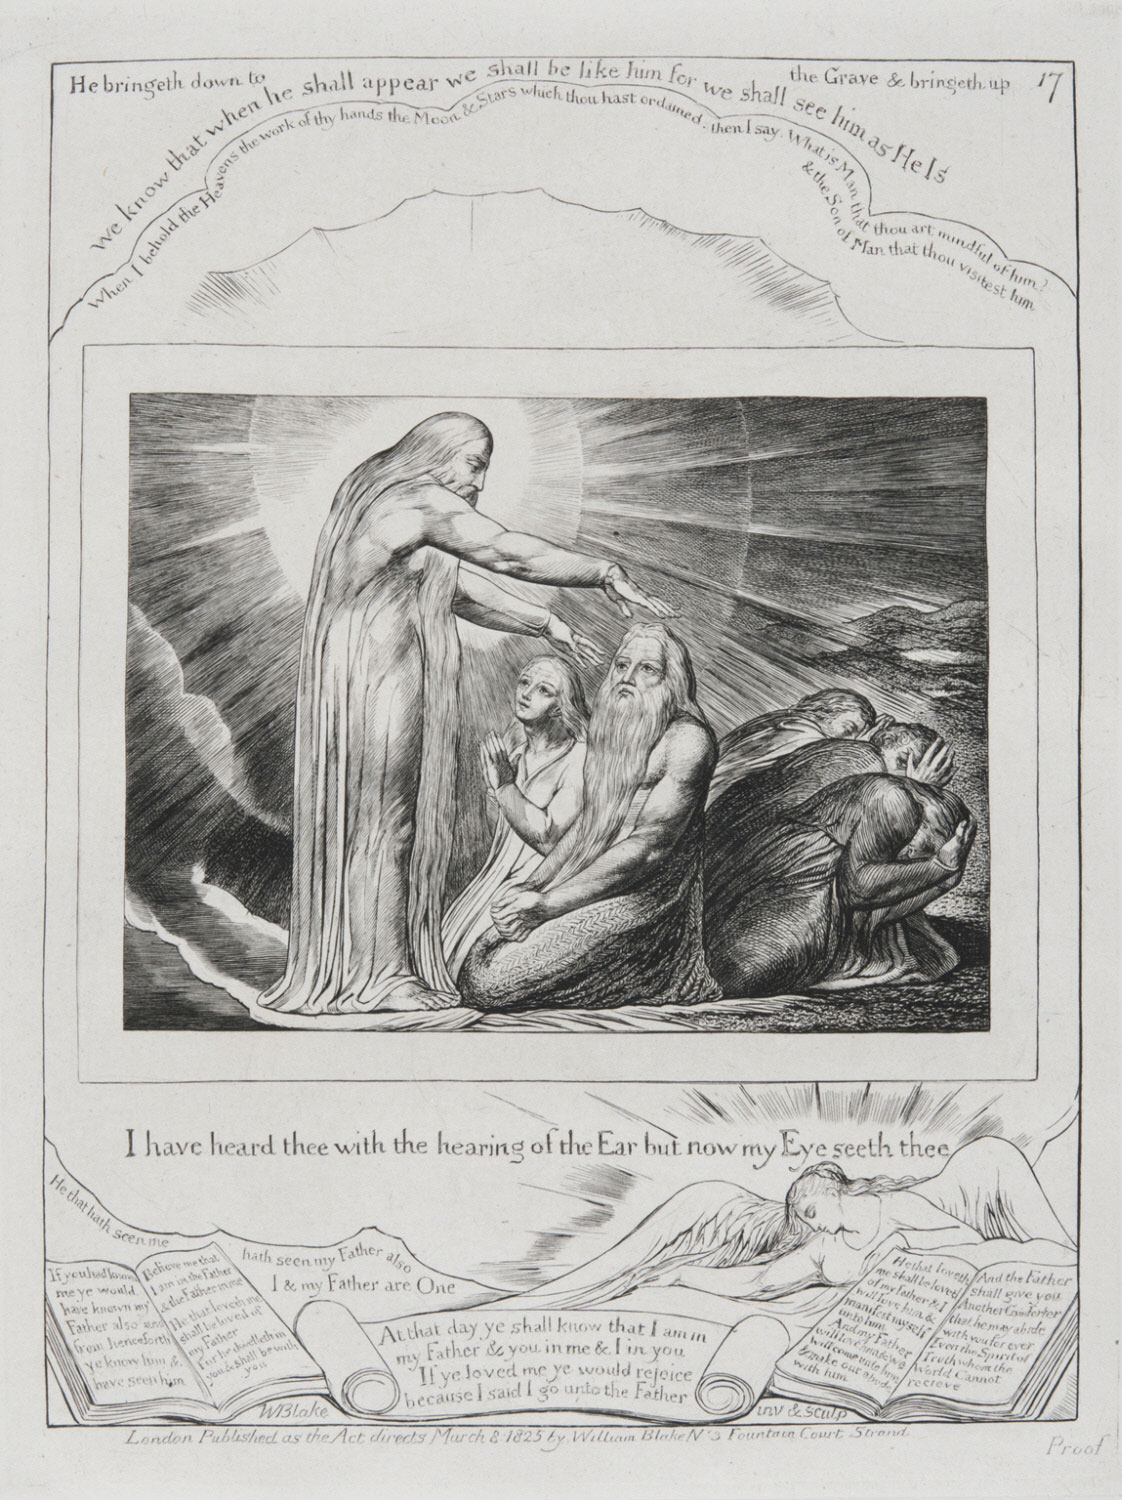 I Have Heard Thee with the Hearing of the Ear But Now My Eye Seeth Thee  , 1825-1826, by William Blake, English from the  Philadelphia Museum of Art